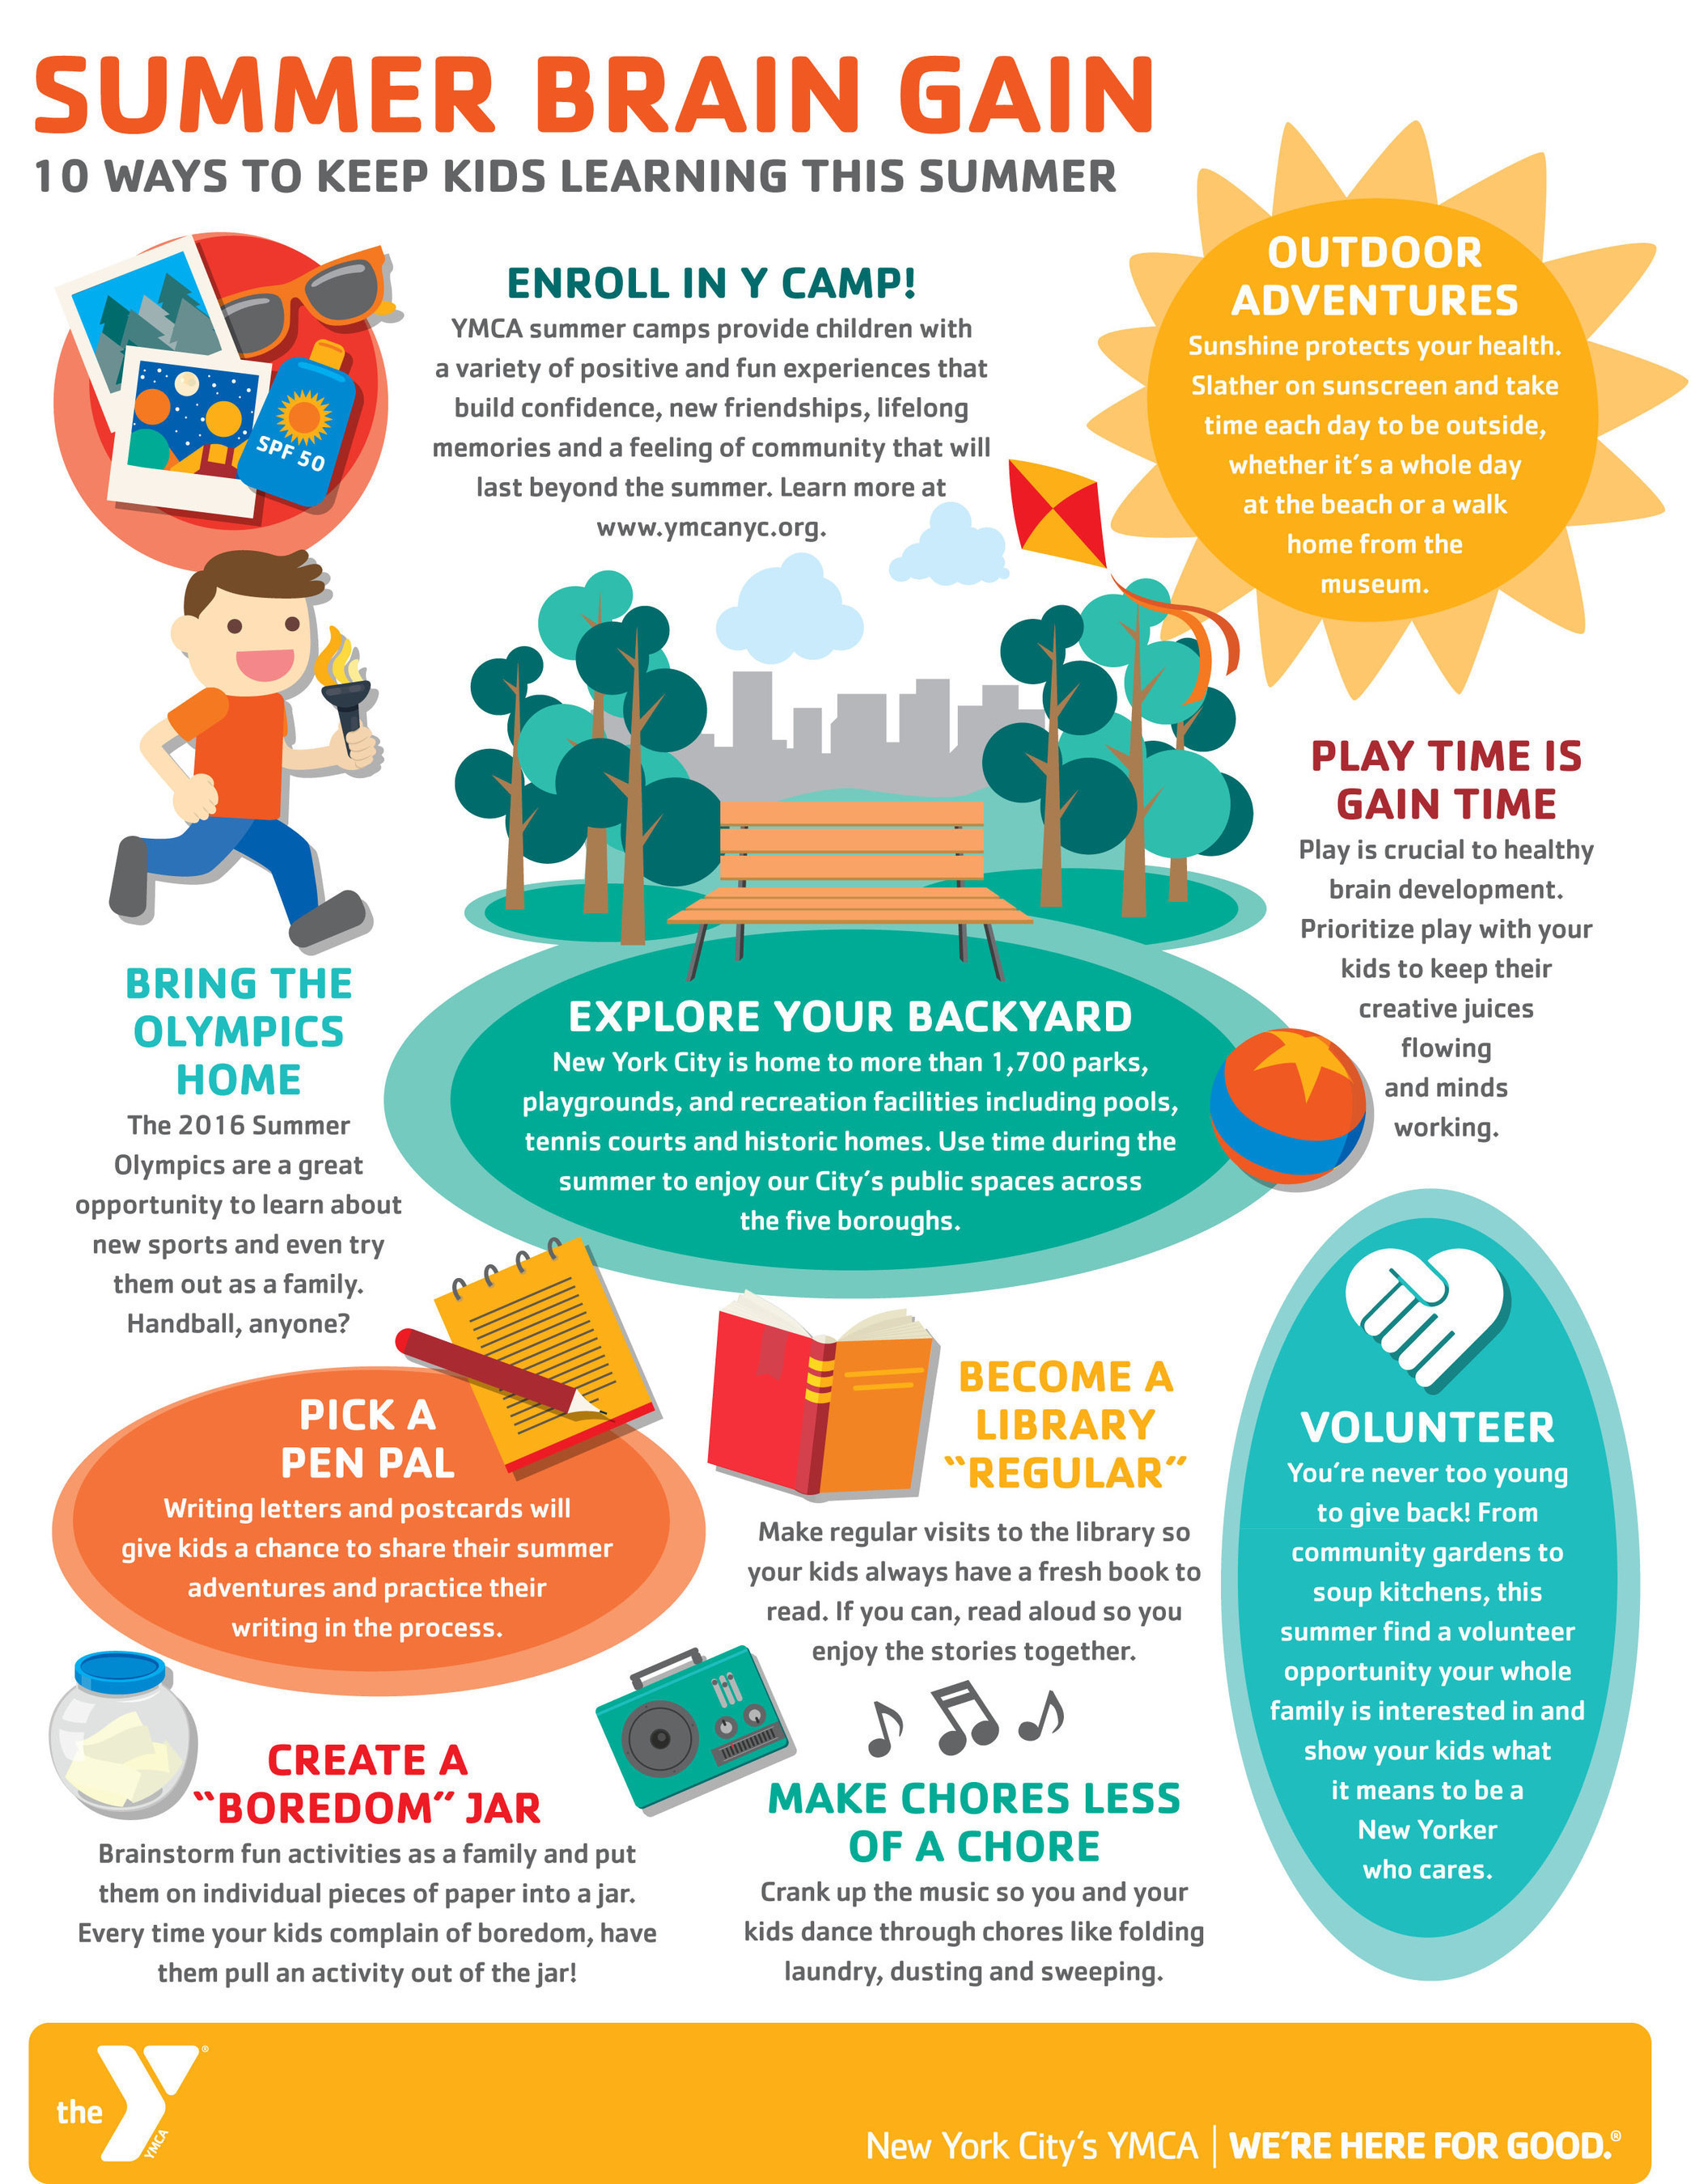 Summer Brain Gain - 10 Ways to Keep Kids Learning This Summer